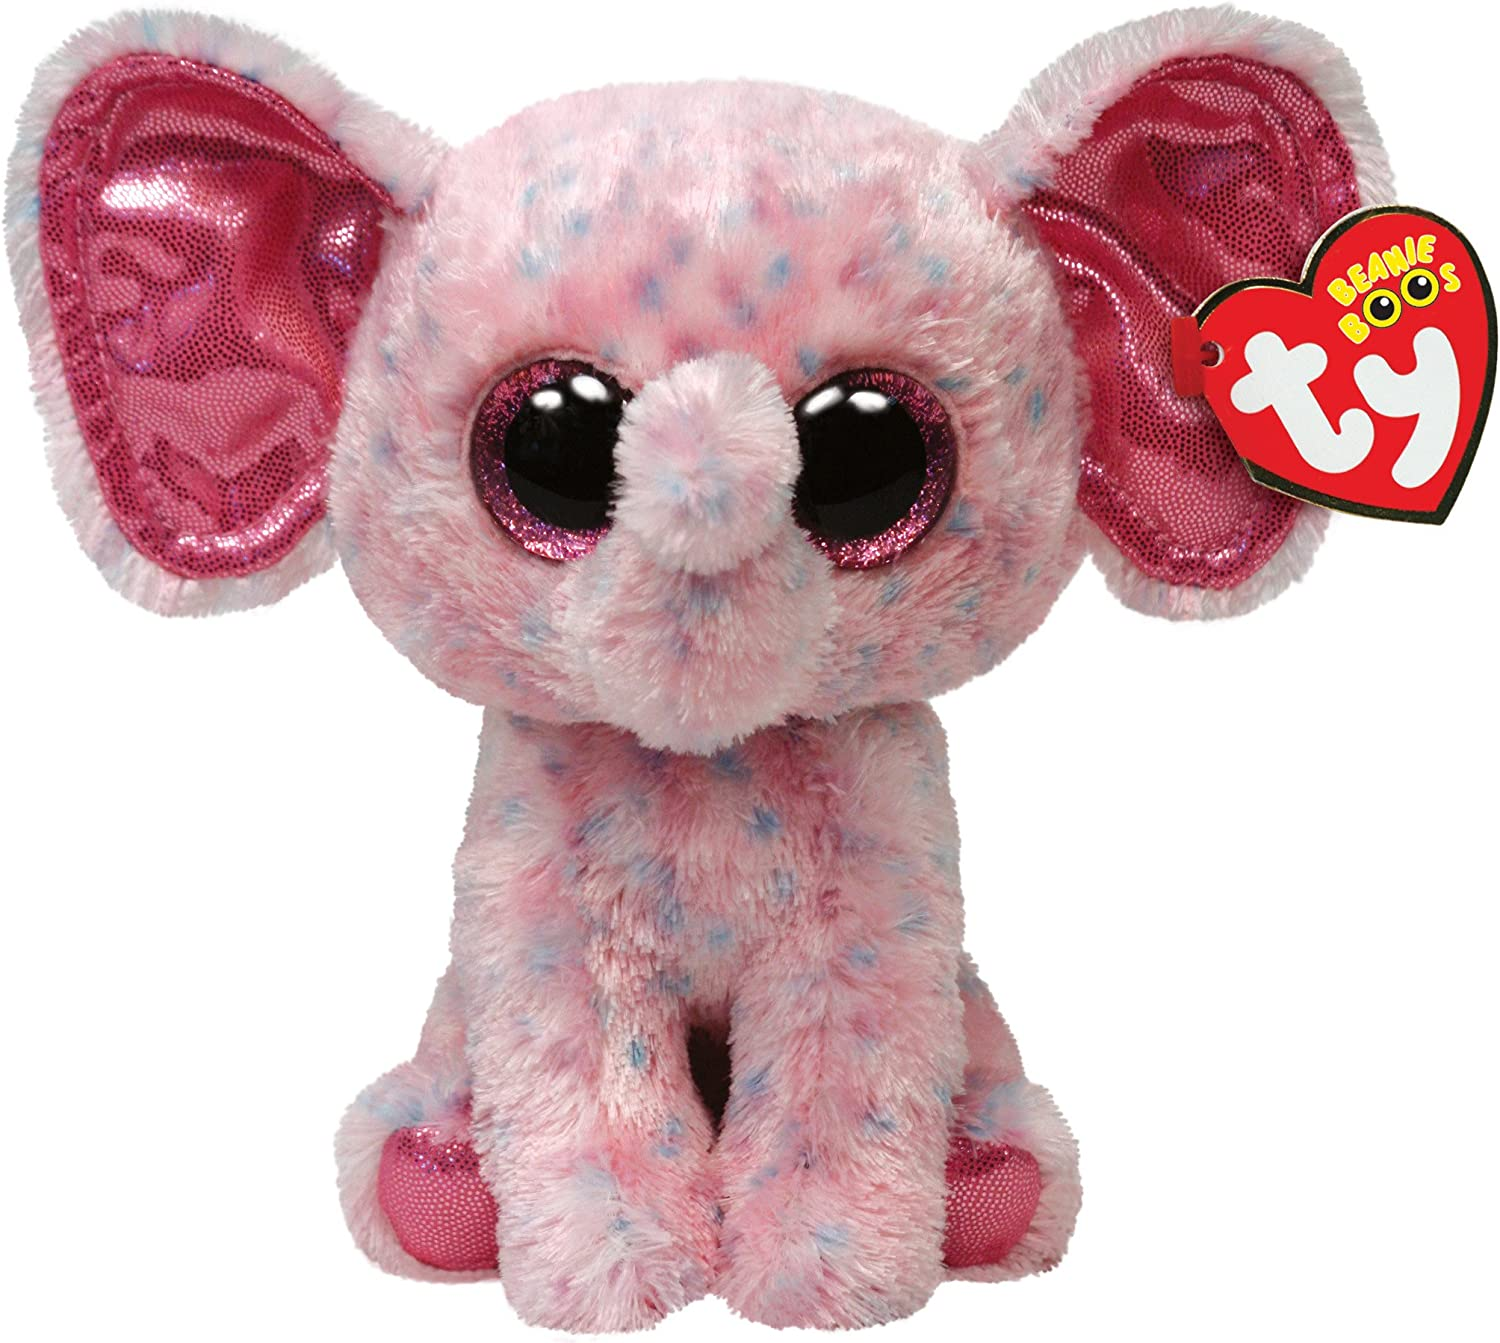 Ty - Peluche Elefante, 15 cm, Color Rosa (United Labels 36728TY): Amazon.es: Juguetes y juegos